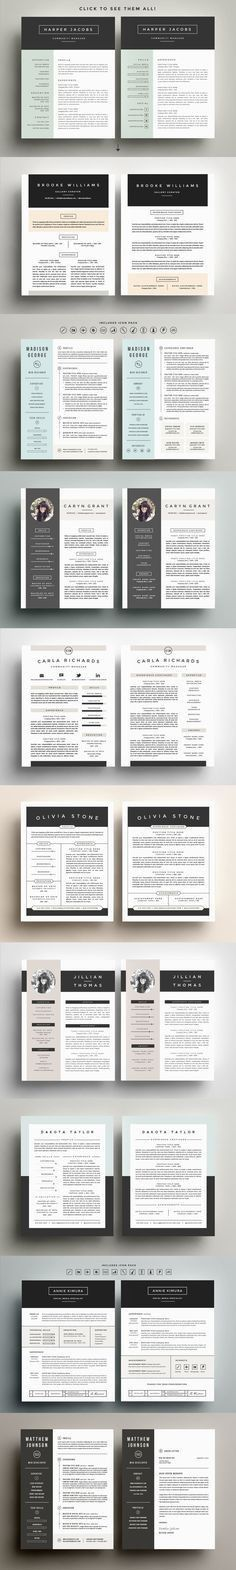 279 free resume templates in Word you can download, customize ...